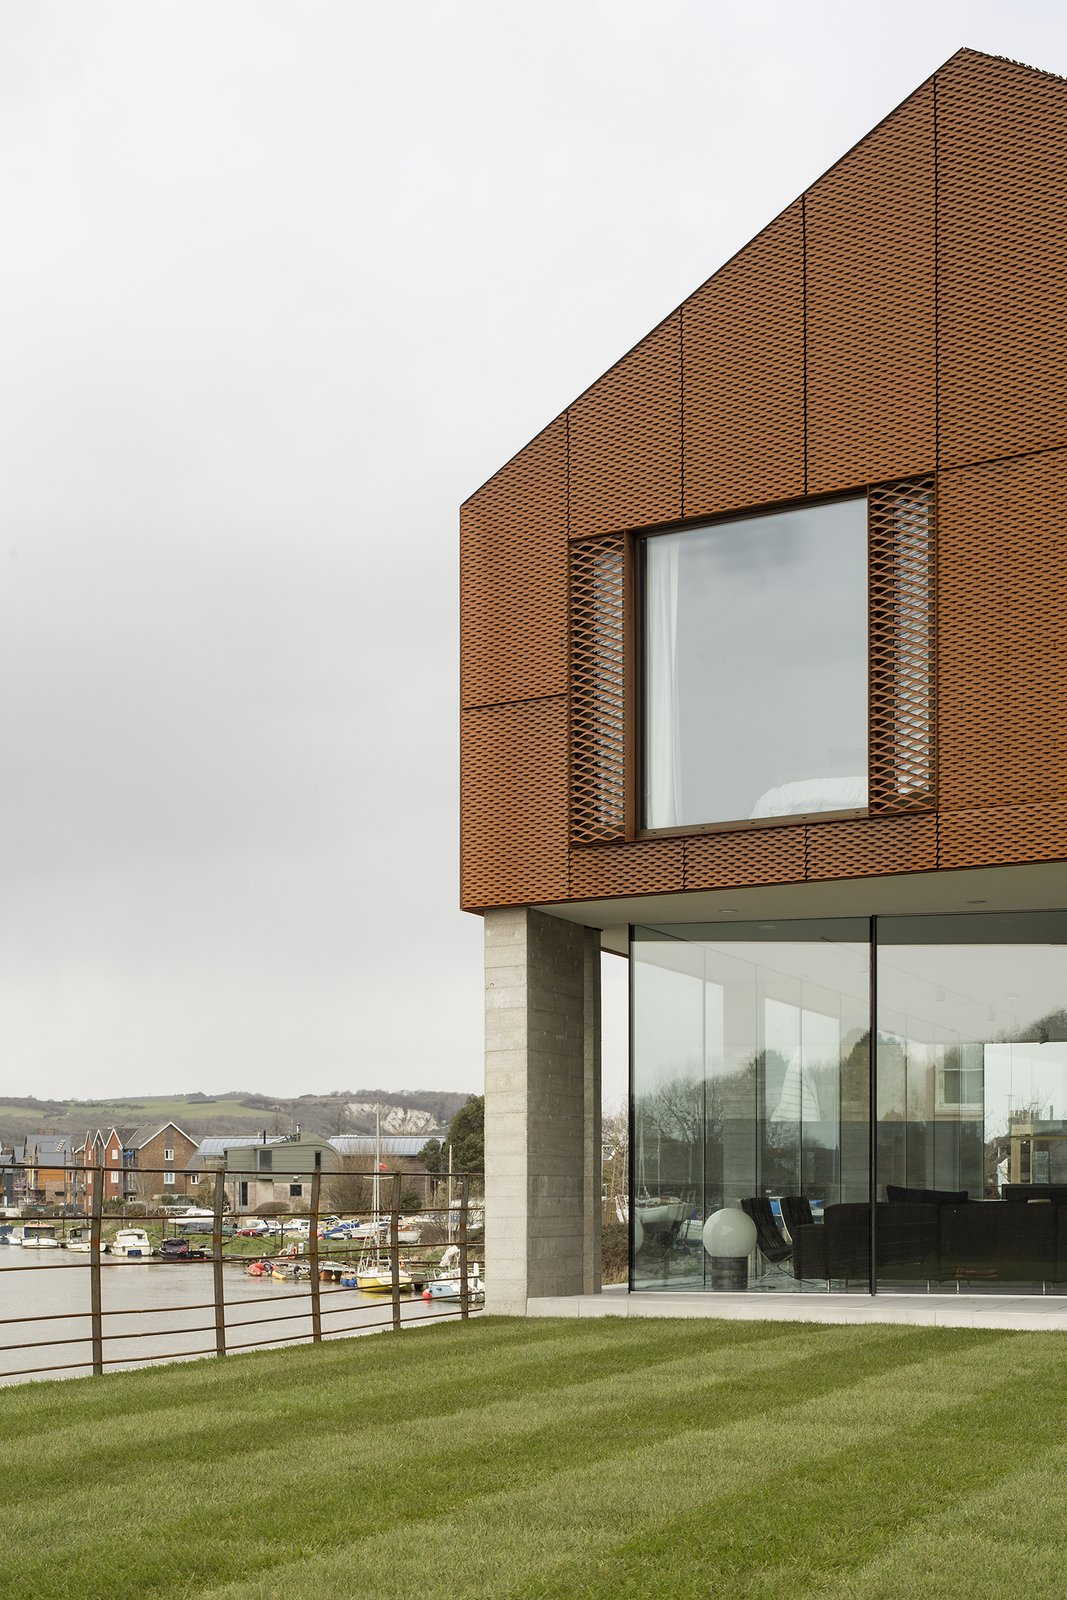 The upper story is clad in a decorative rainscreen of Cor-Ten steel mesh, chosen in part for its tone, which complements the red clay brick used locally.